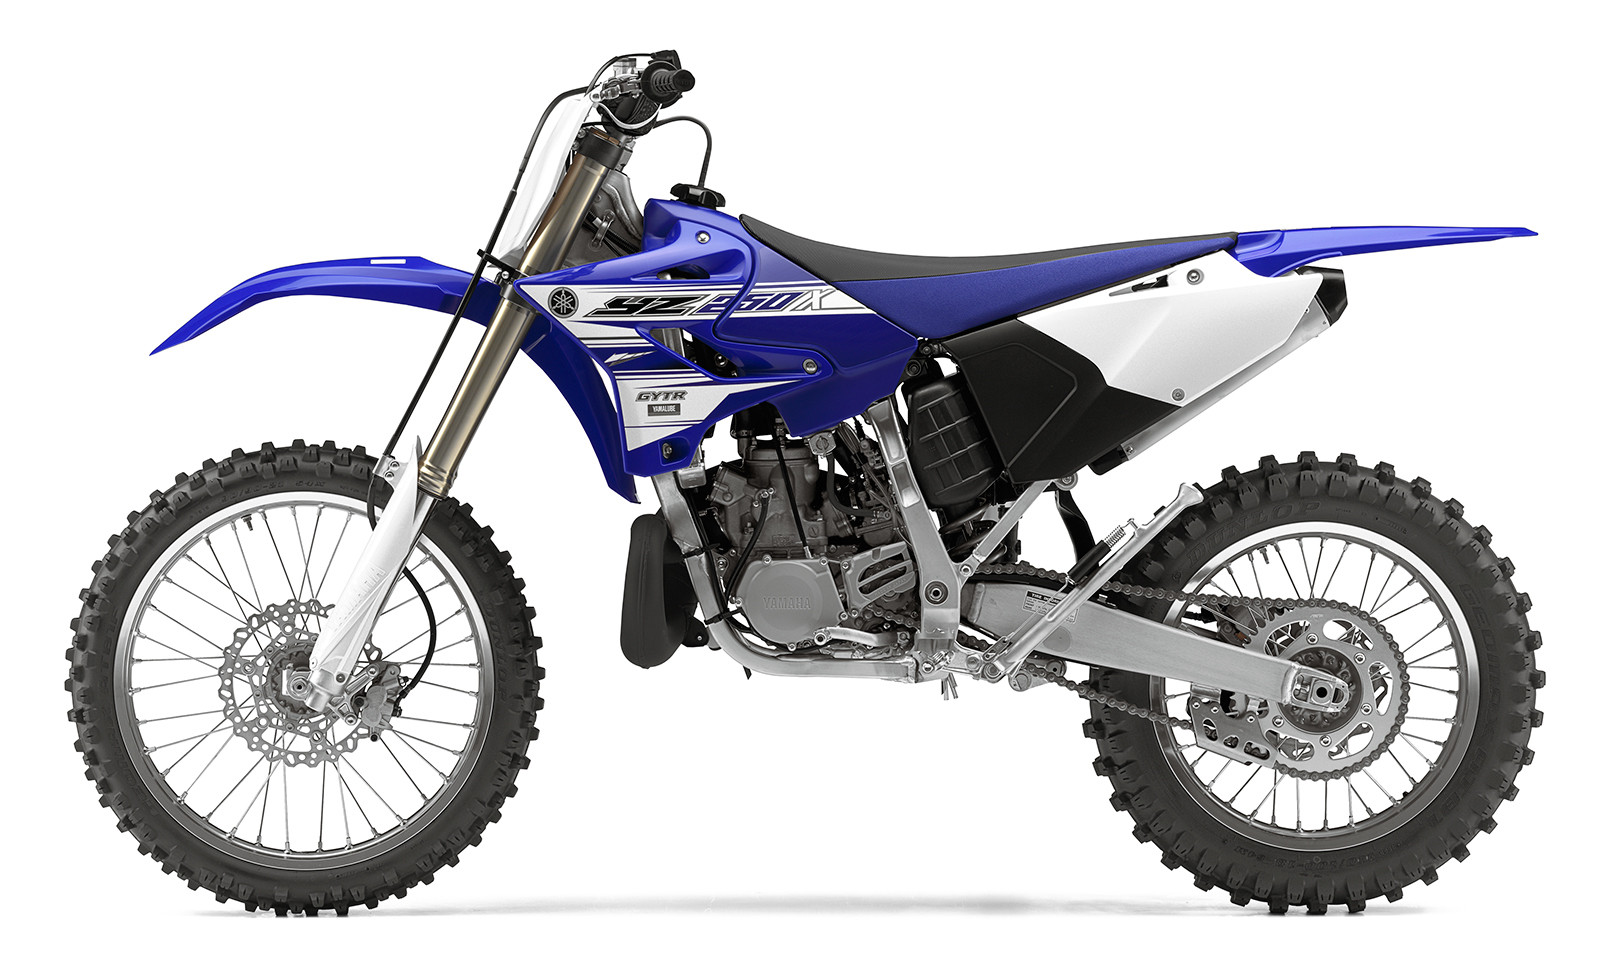 2016 yz250x - BARF - Bay Area Riders Forum